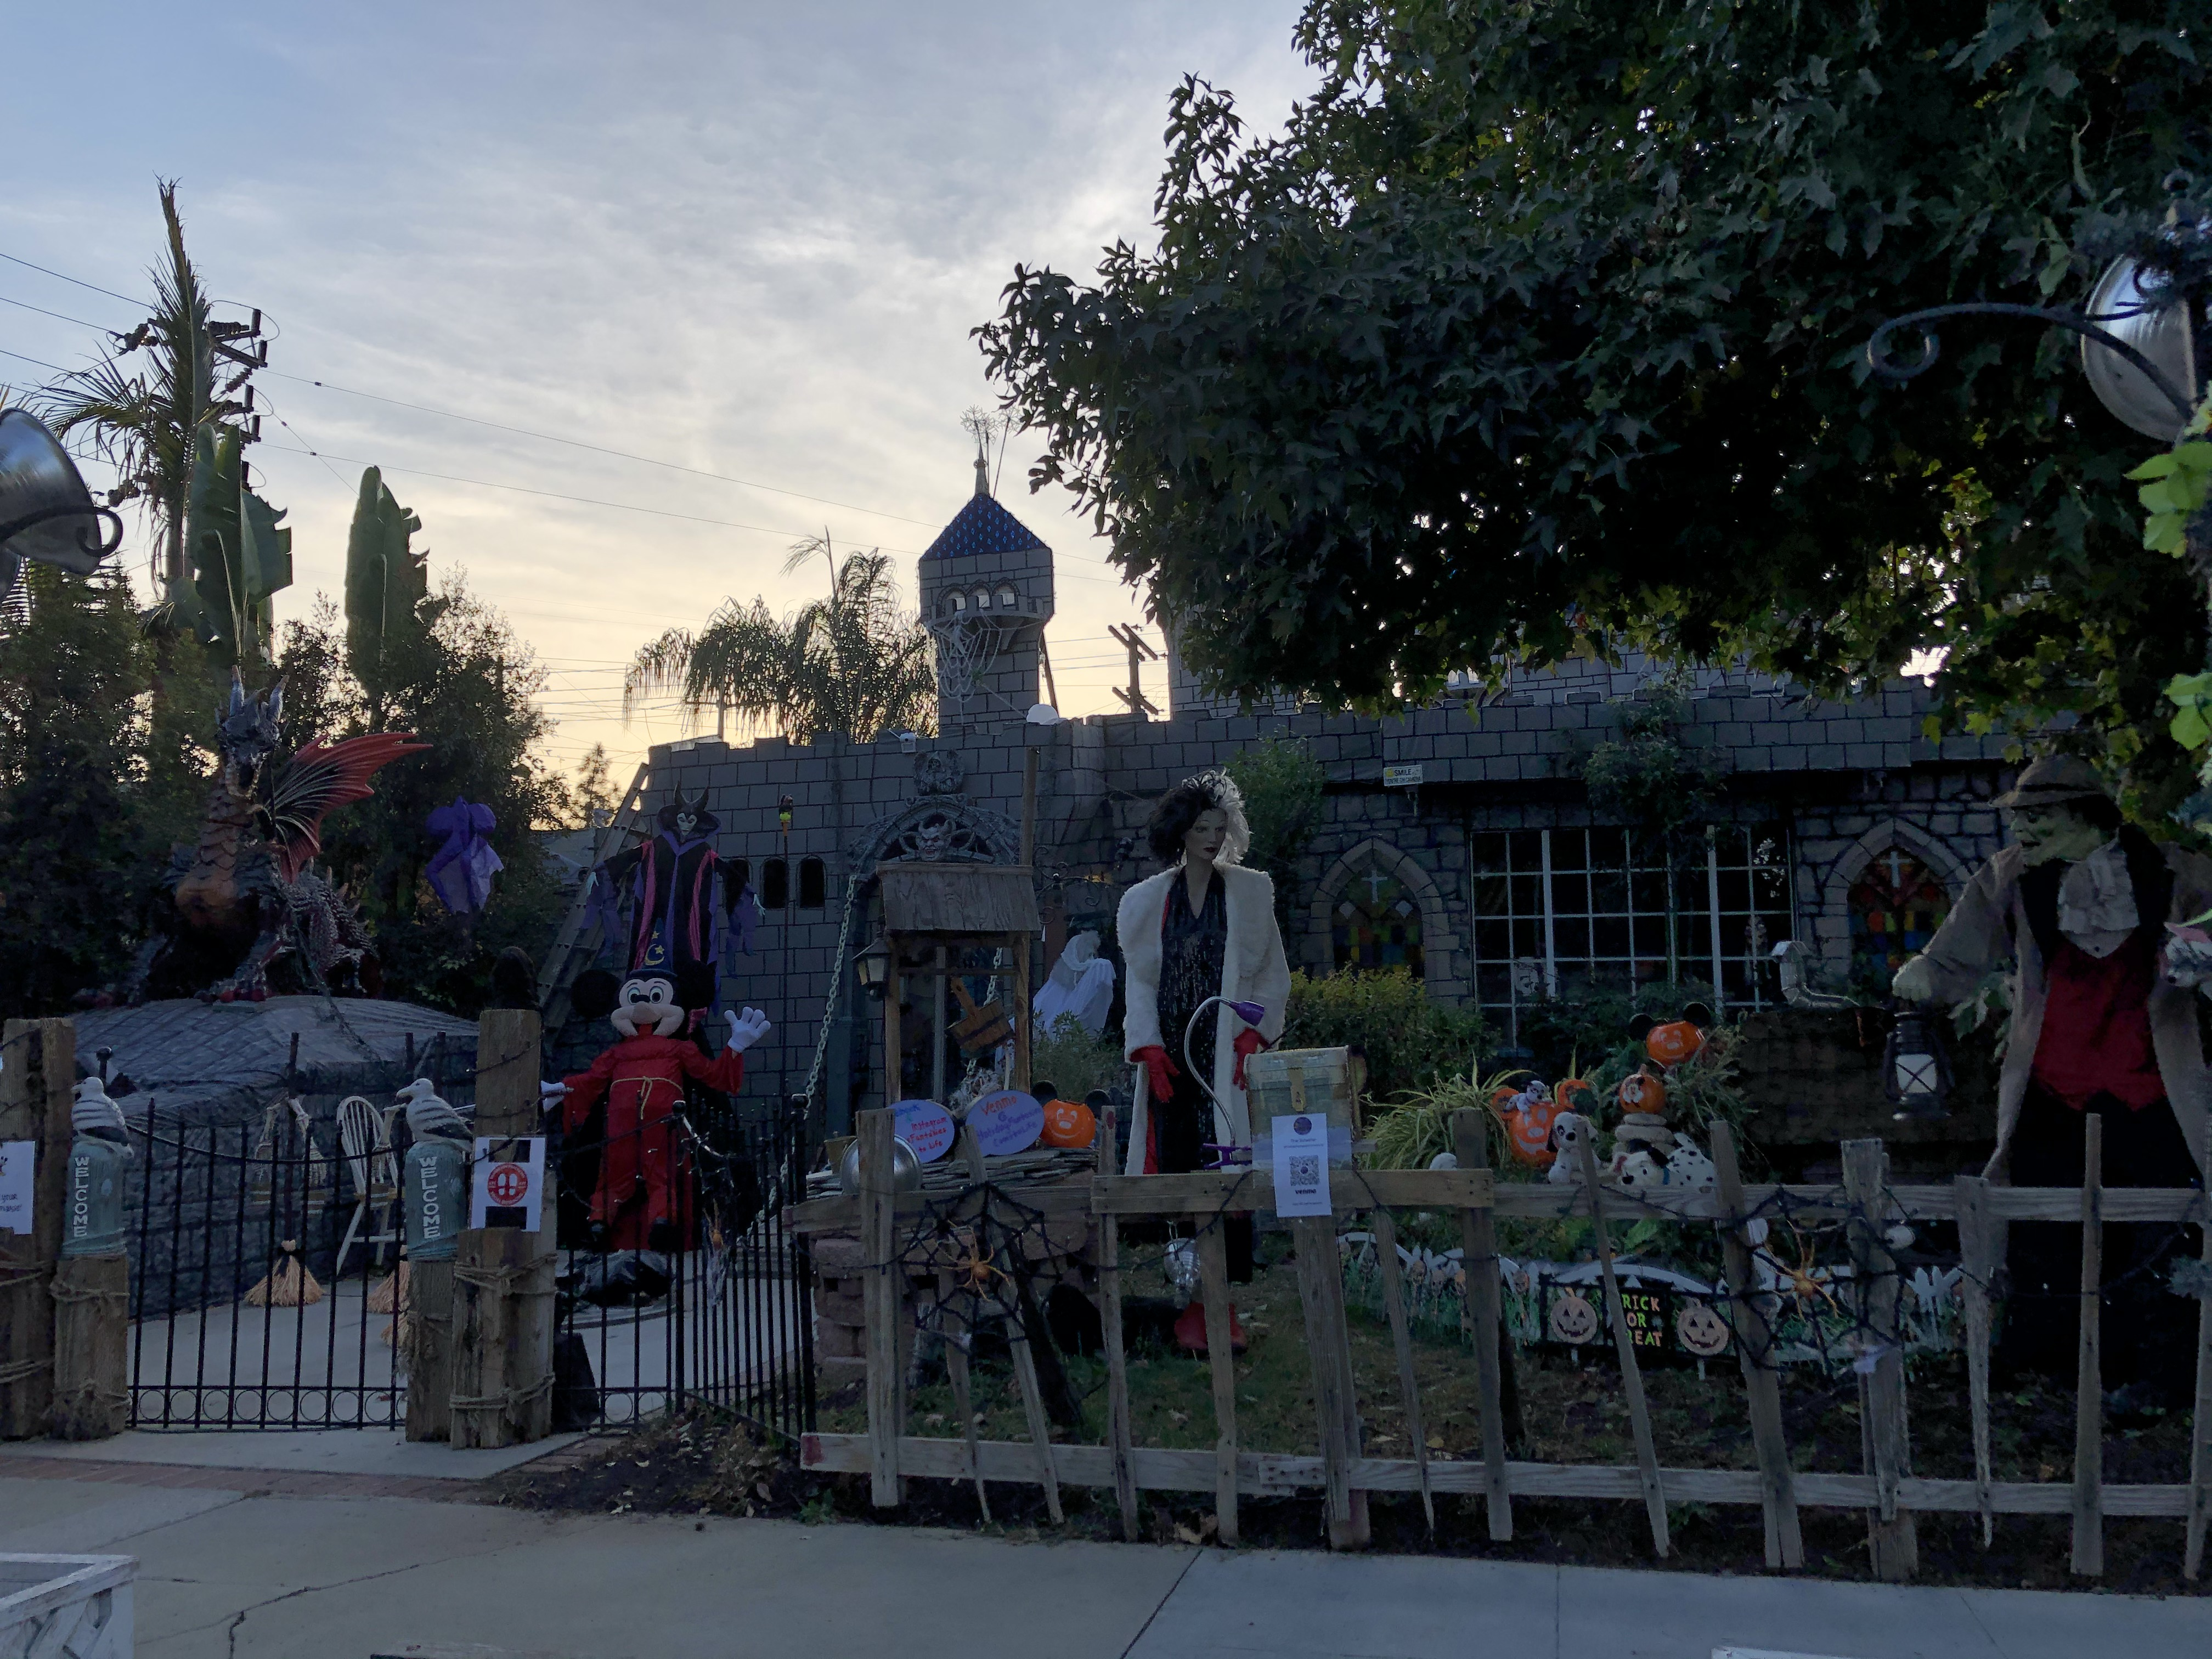 Just part of the fabulous Holiday Fantasies Come To Life display in Burbank.  We visited at dusk, but I hear it's even more spectacular at night! Photo by Karen Salkin.